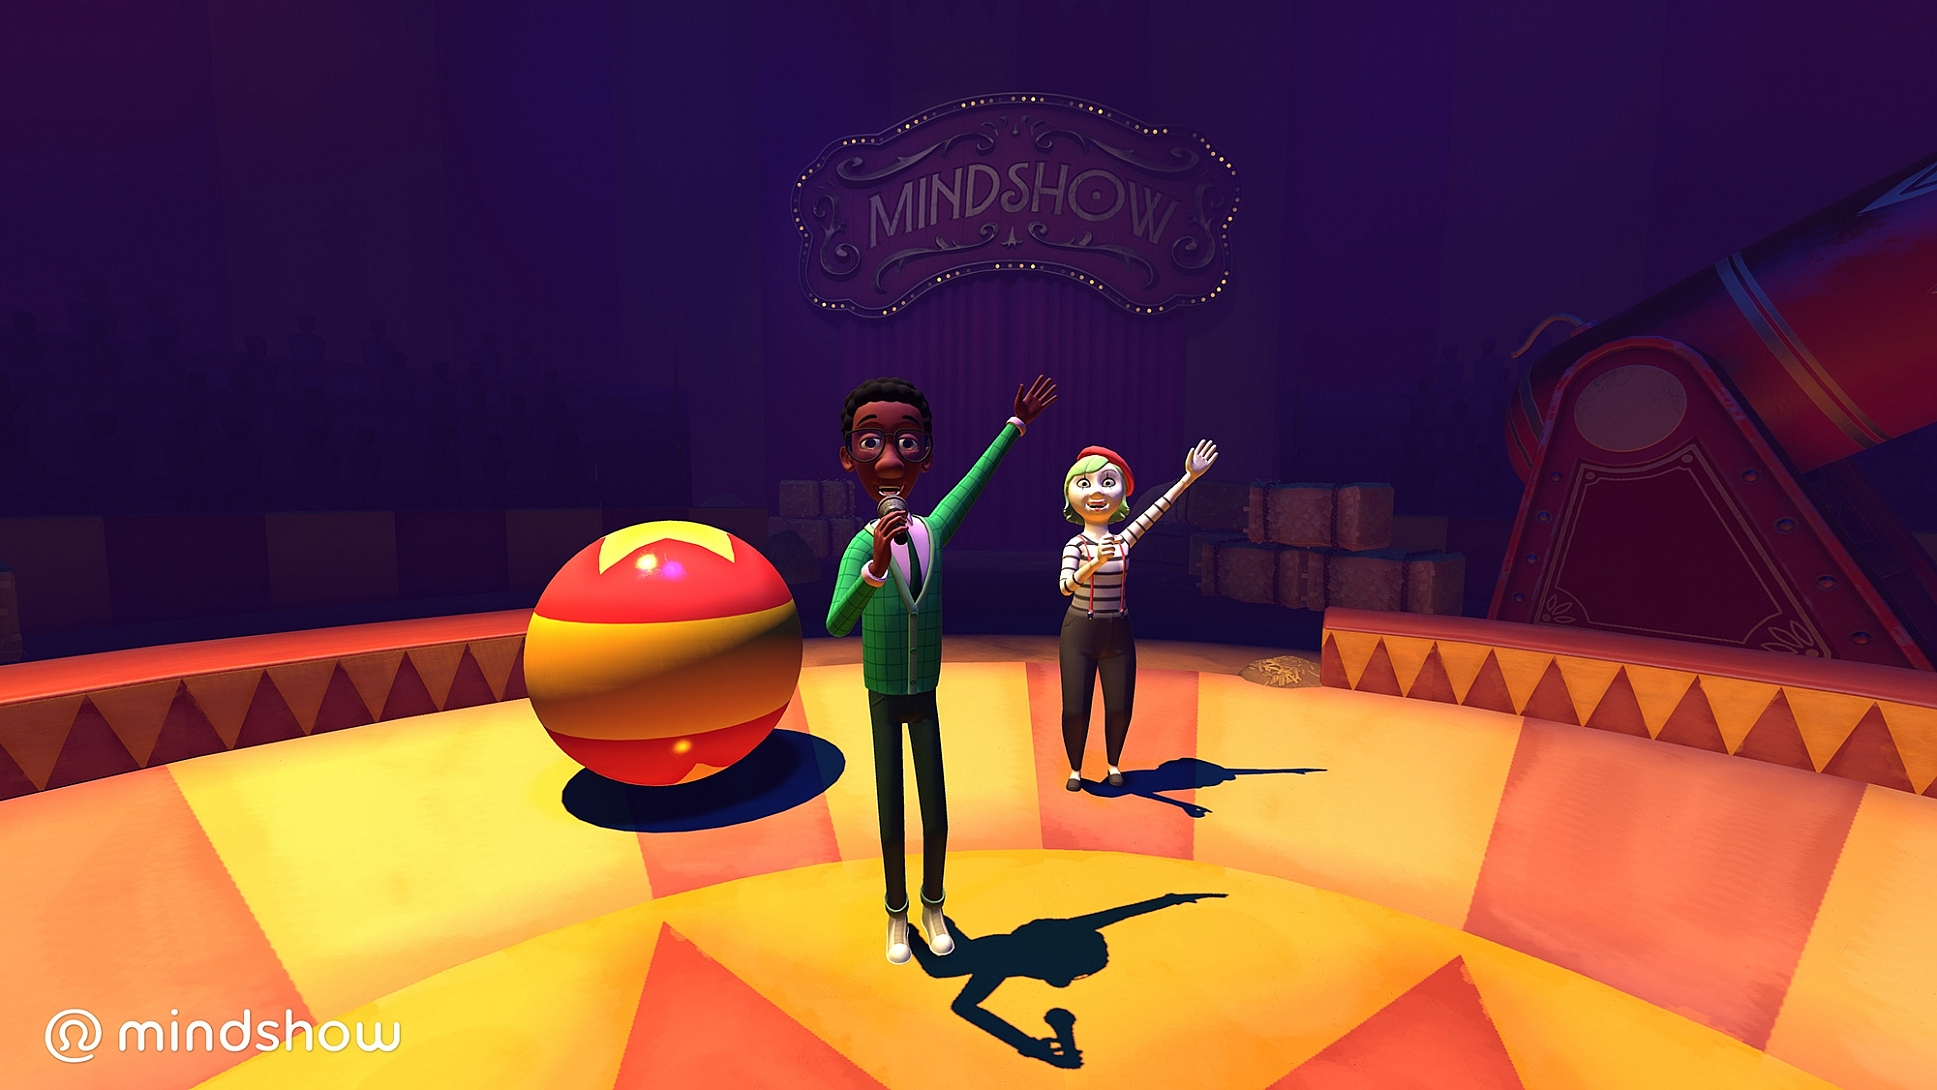 Mindshow: #DIY #VR #Animation